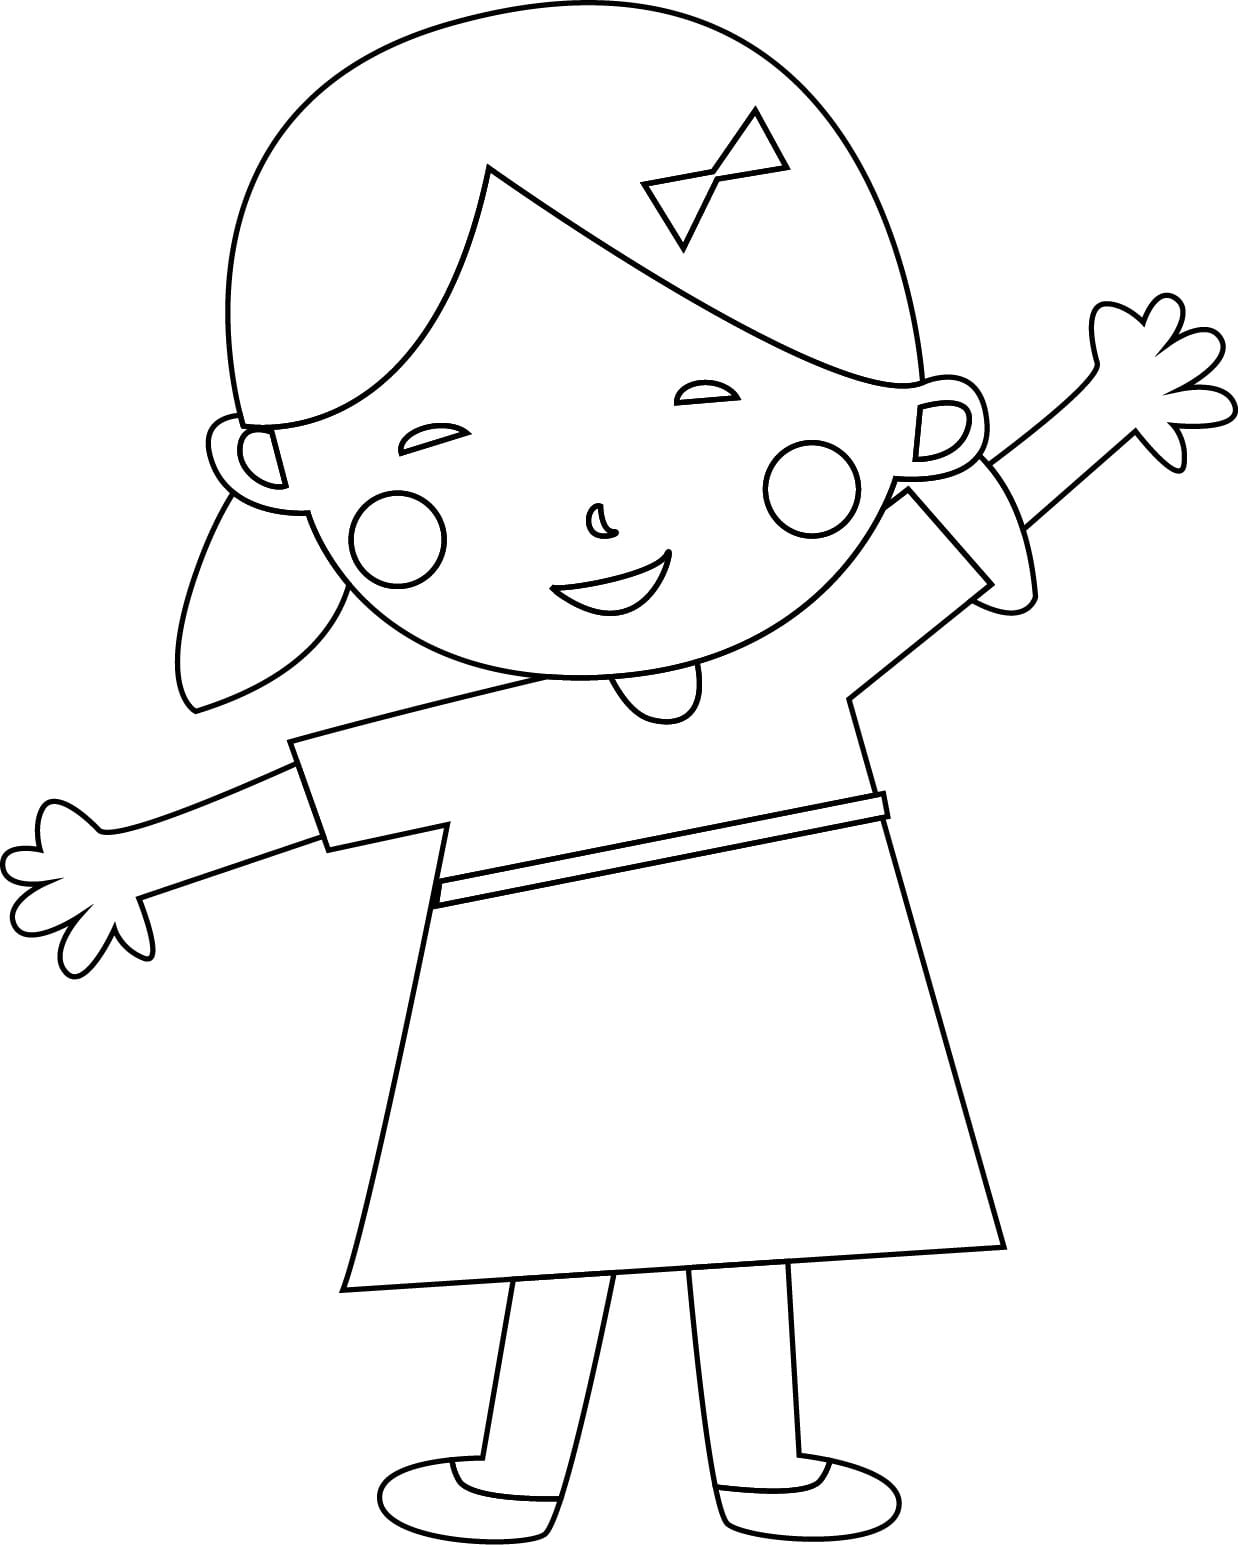 Coloring Page For Children